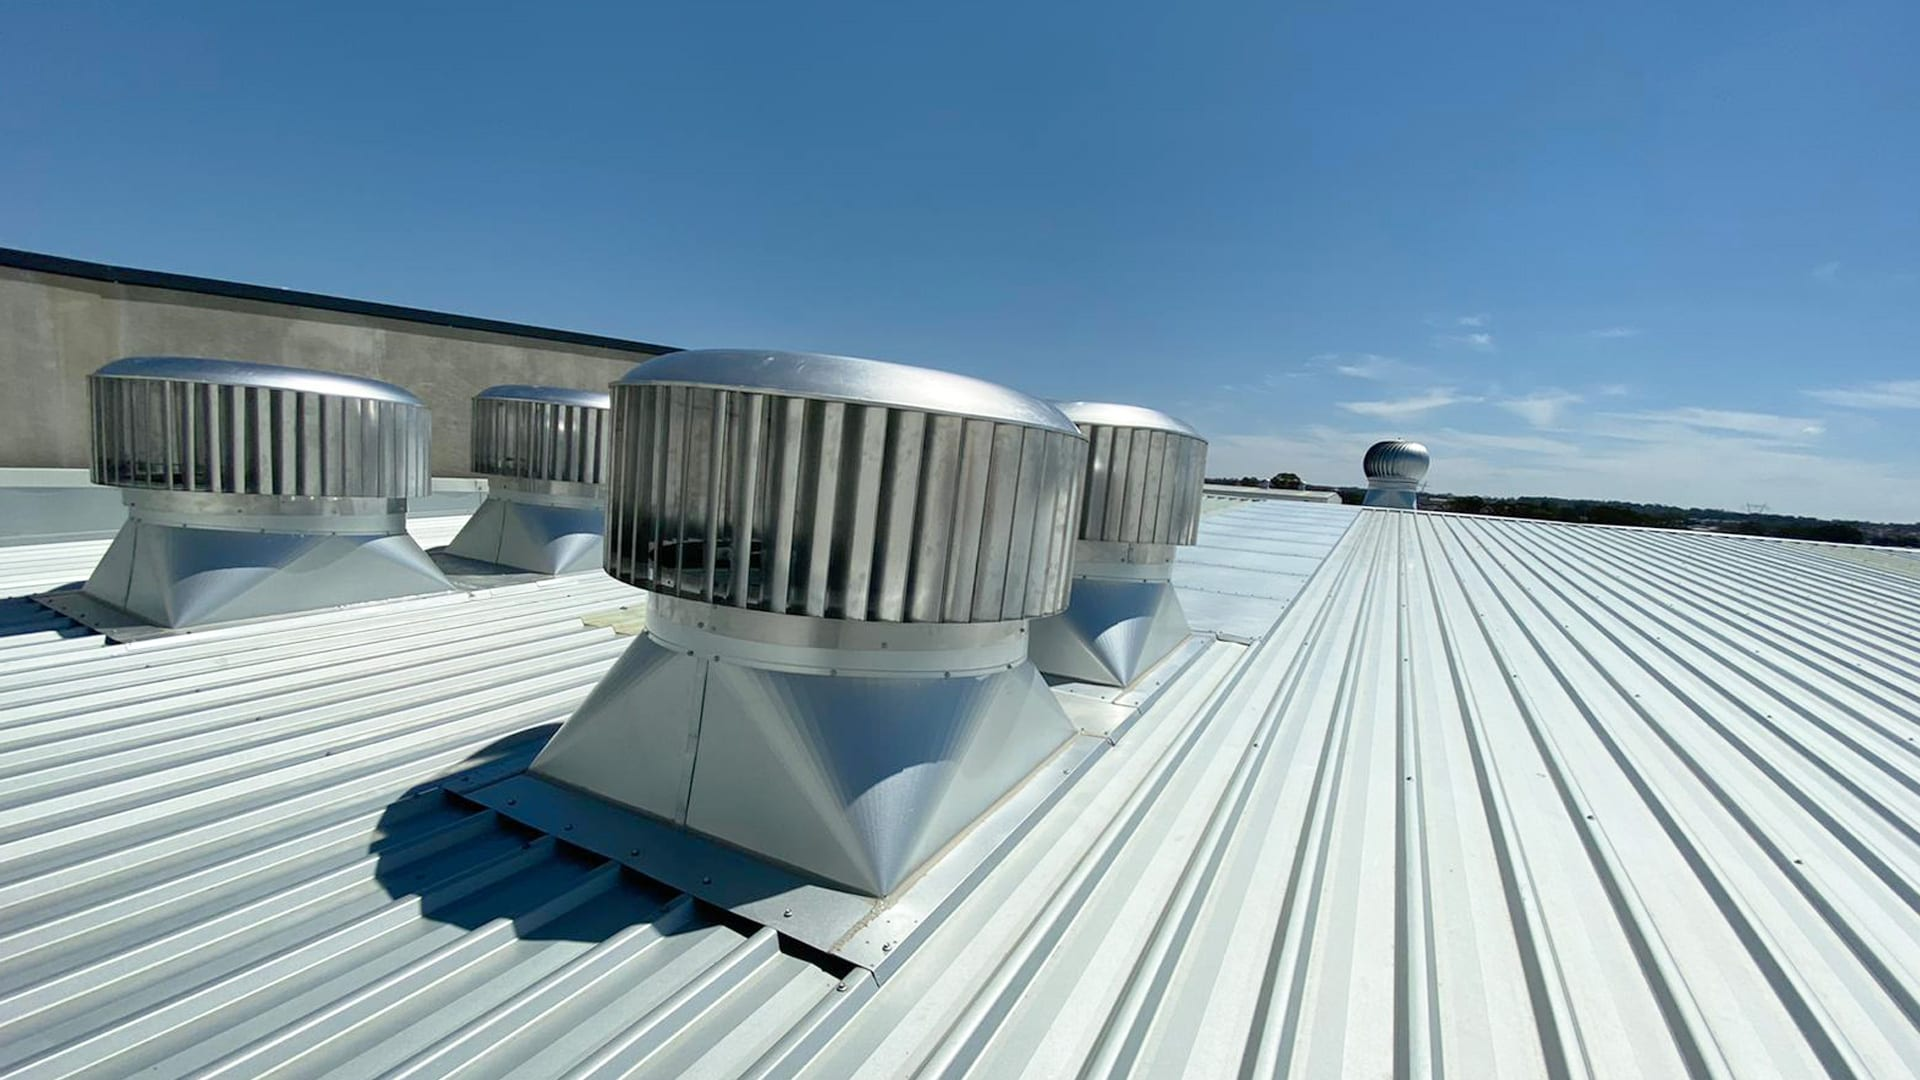 4 Ampelite Rotary roof Vents Commercial Roof